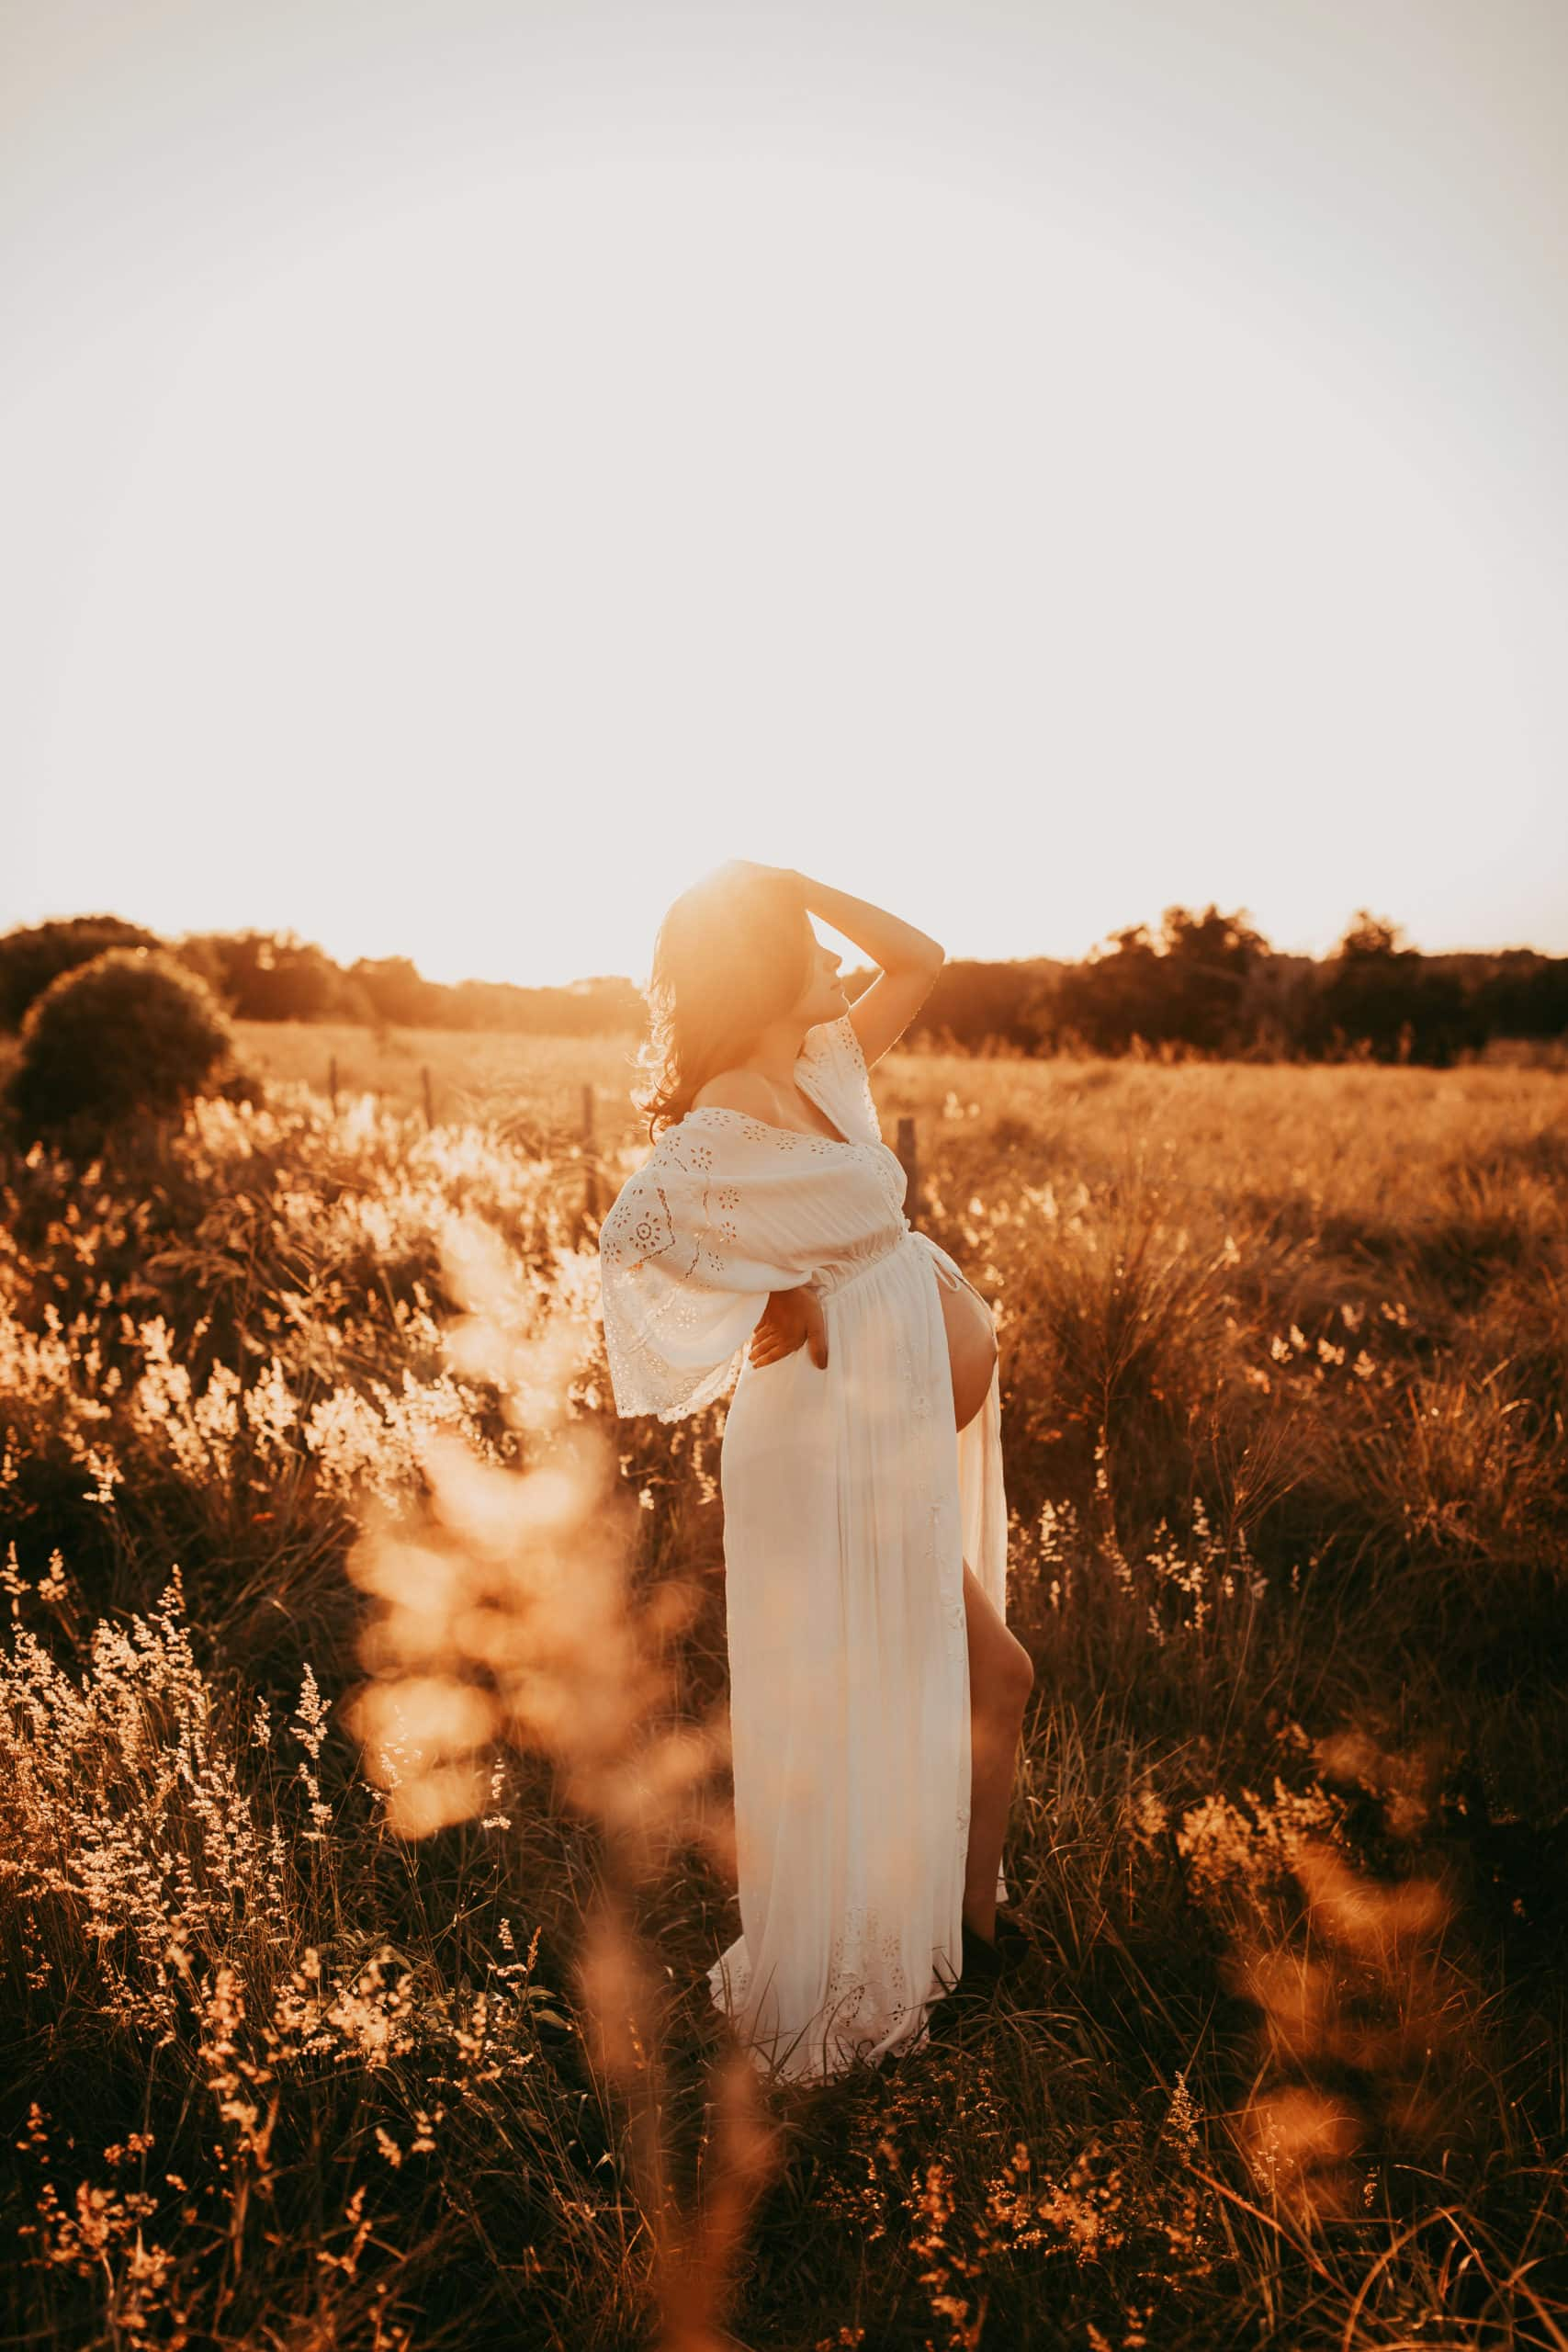 Orlando Maternity Photographer, woman standing in field with a white dress